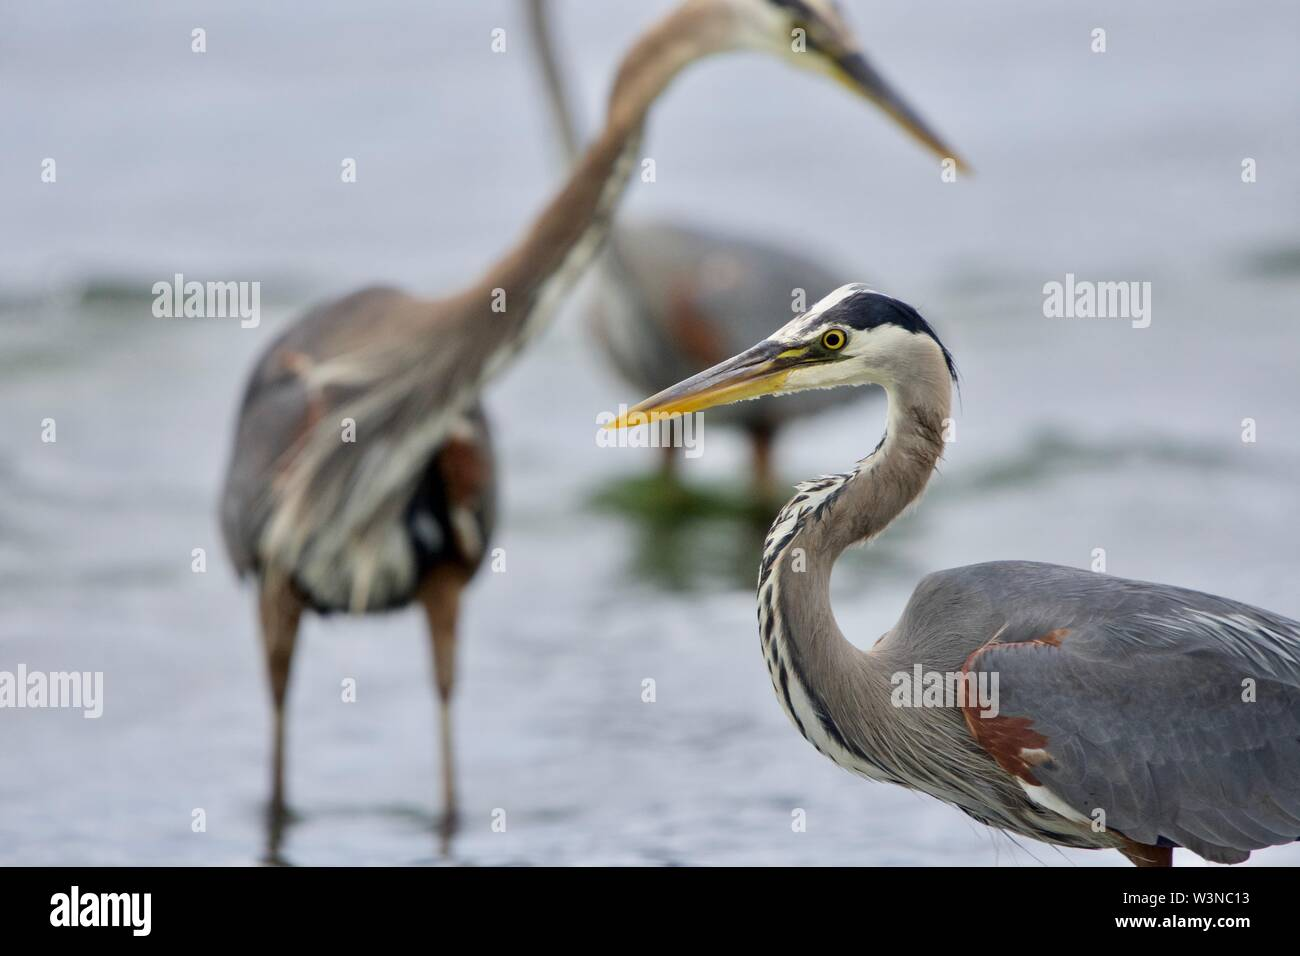 Close up of heron with two other great blue herons fish behind it, Witty's Lagoon, Vancouver Island, British Columbia. - Stock Image